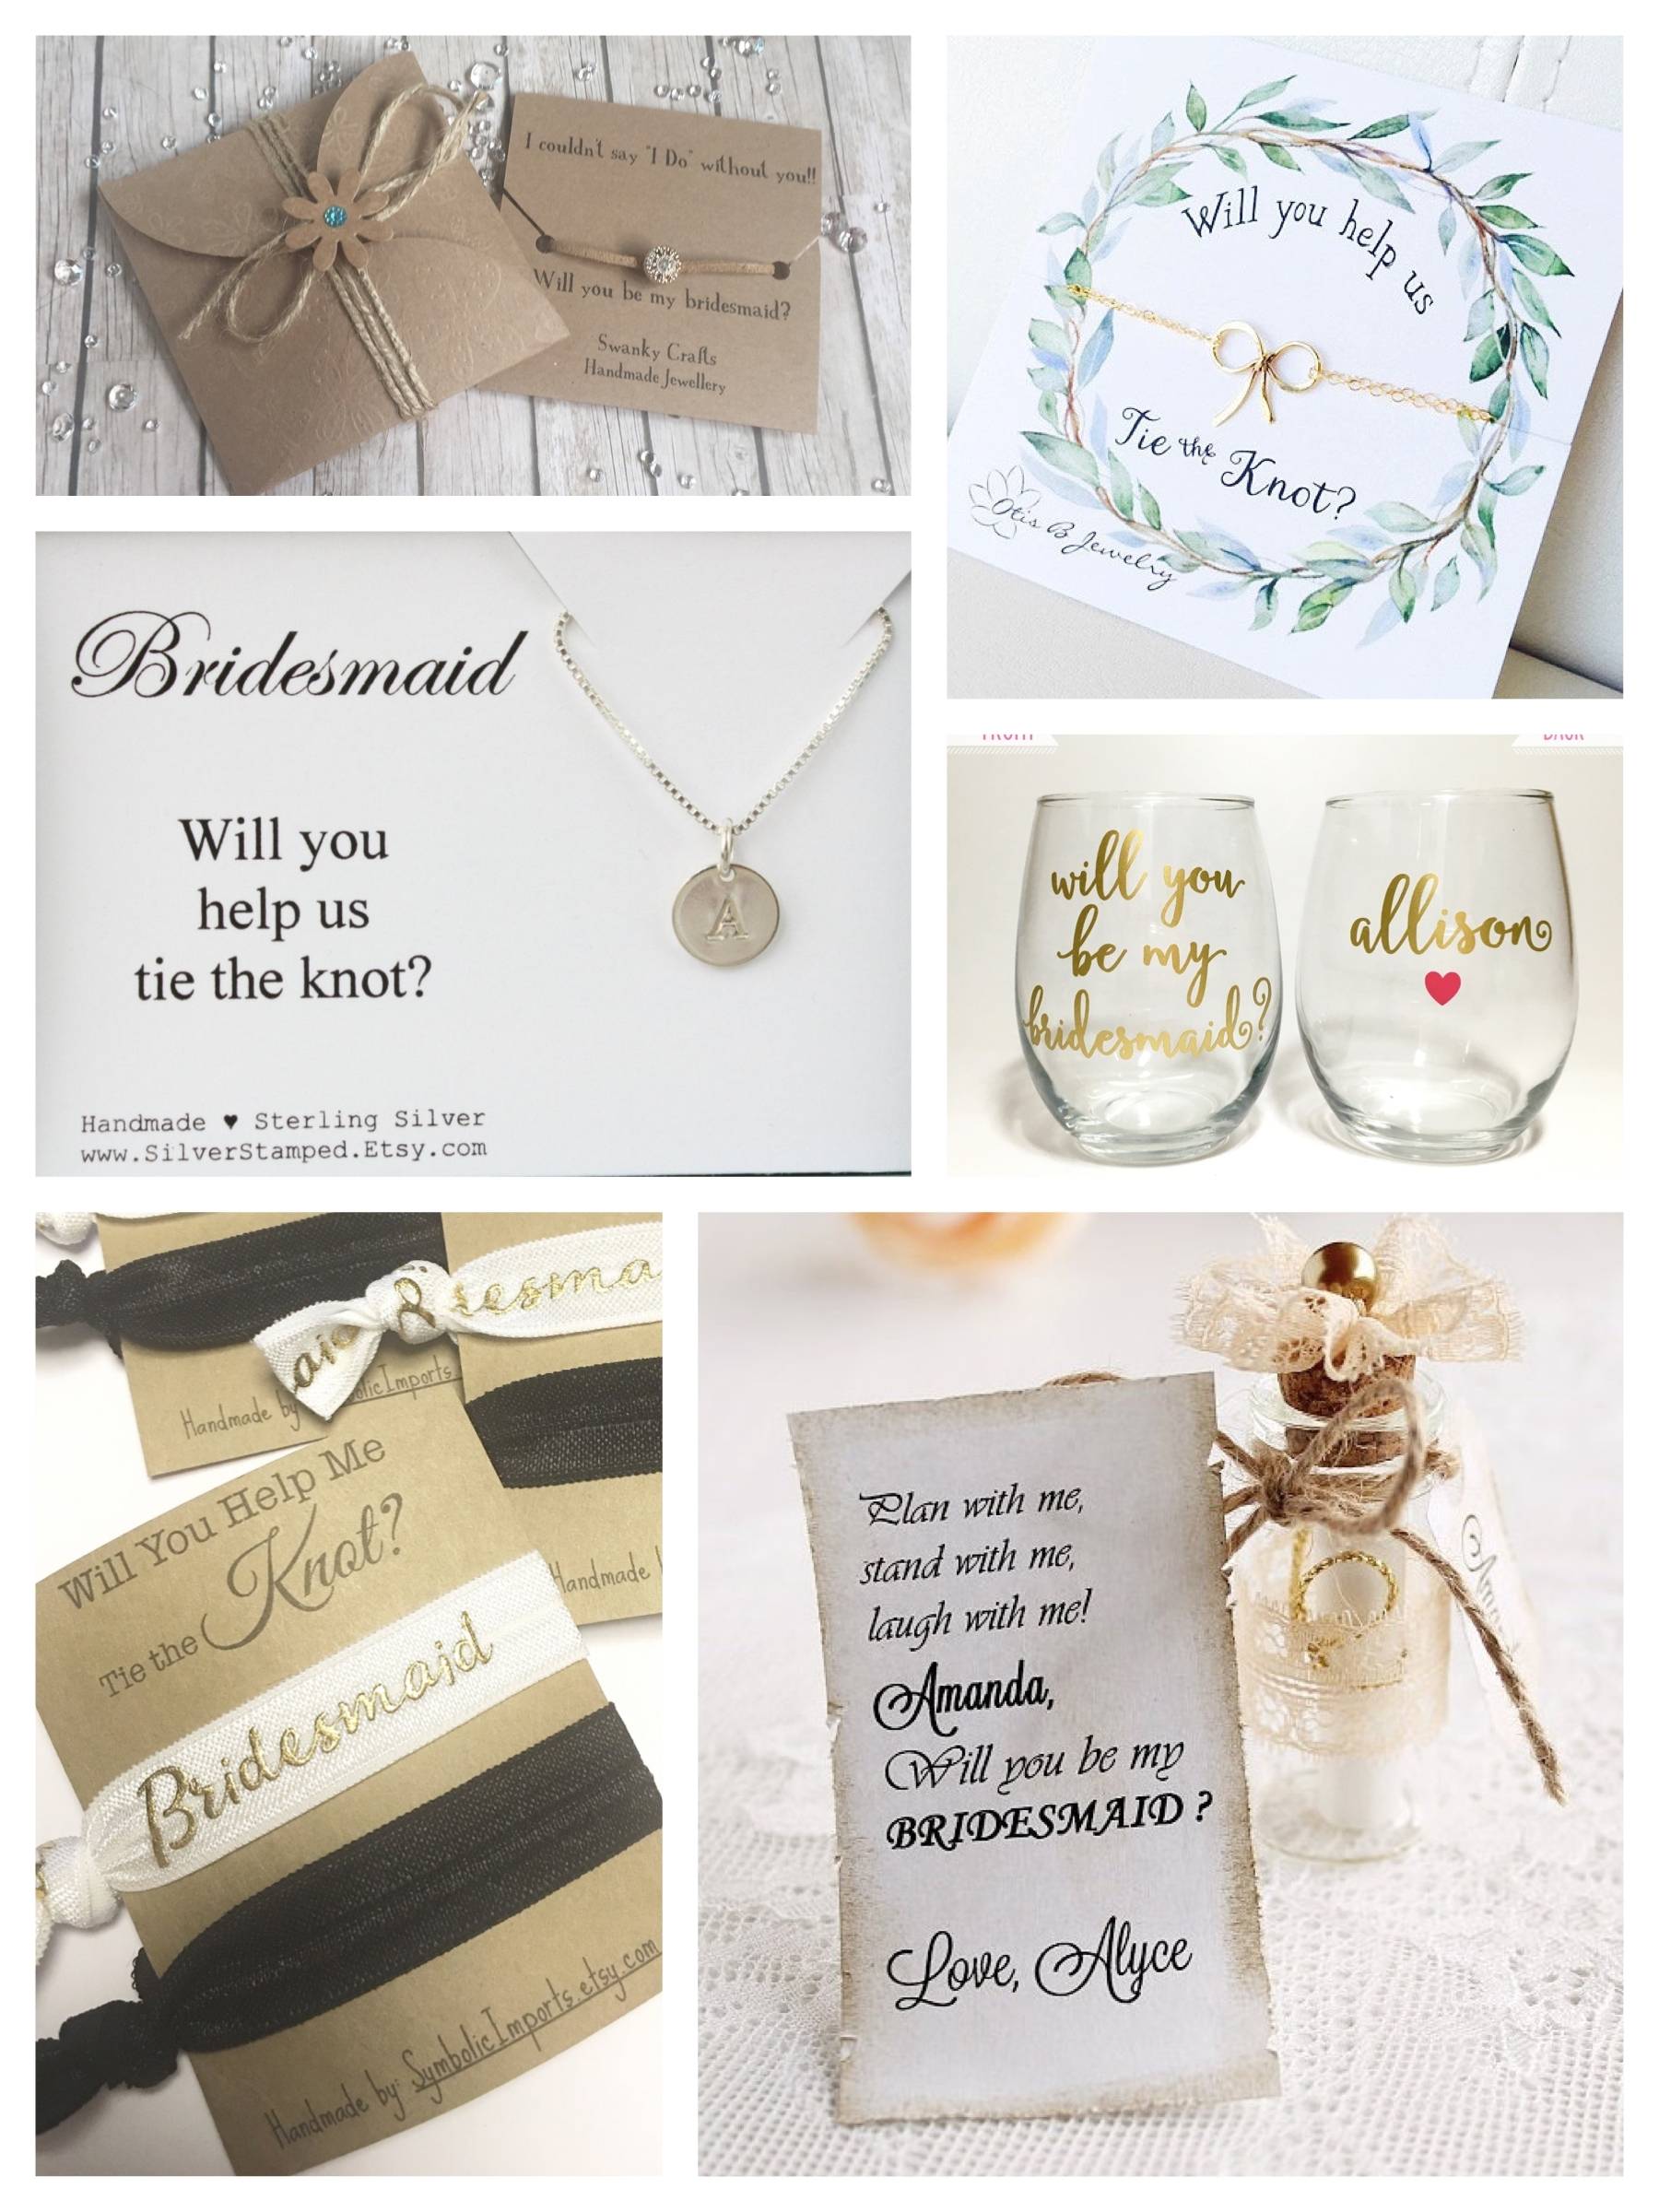 10 Cute How To Ask Bridesmaids Ideas %name 2020